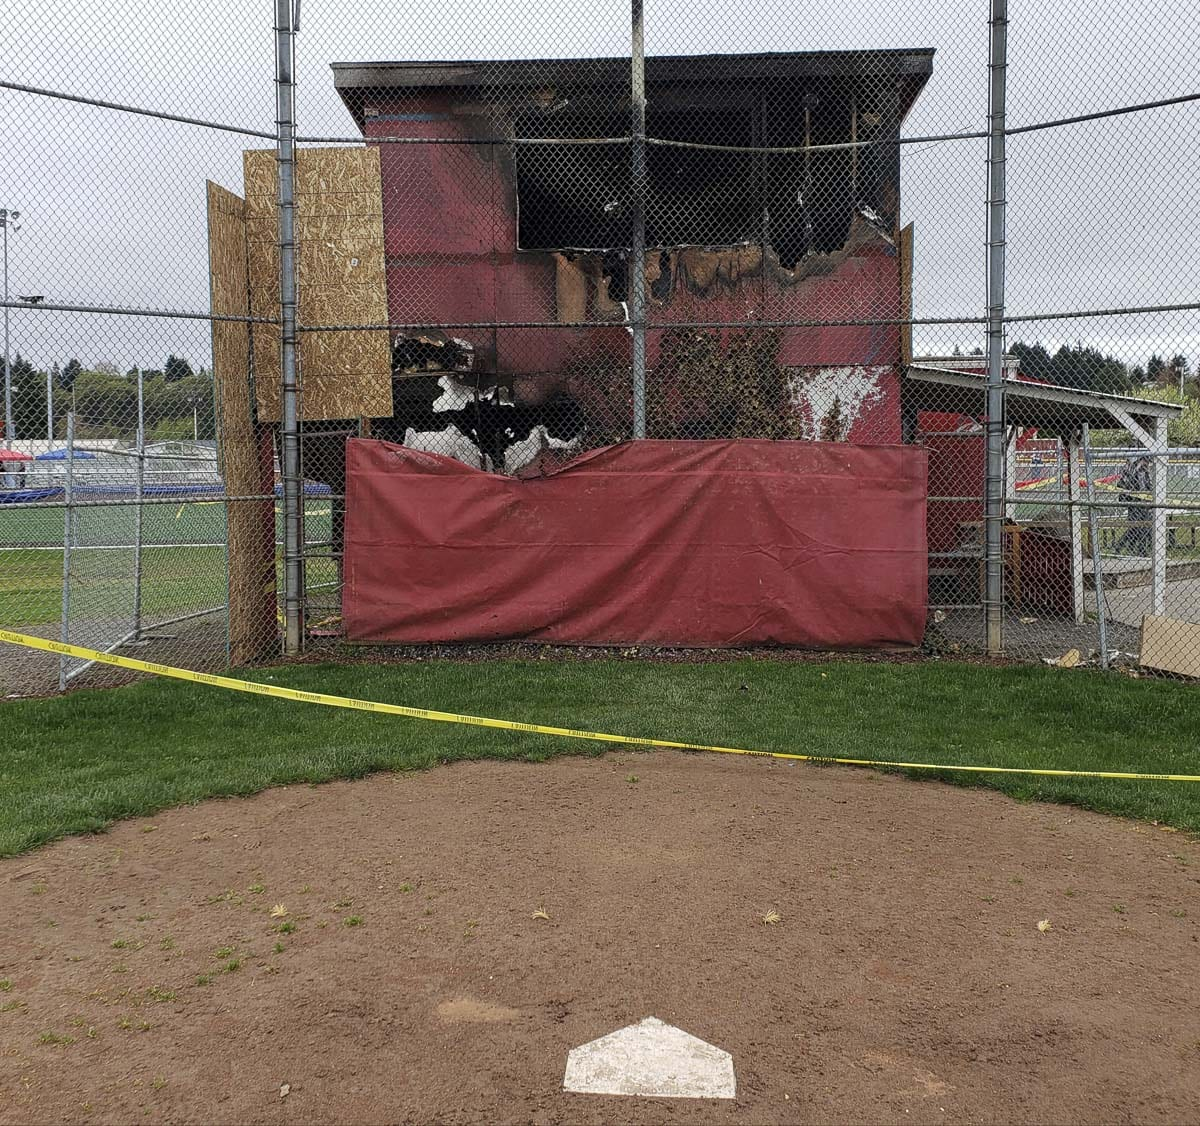 This building by the main field of Alcoa Little League was gutted by fire on March 27. The league stored much of its equipment in the building and lost it all. Photo by Paul Valencia